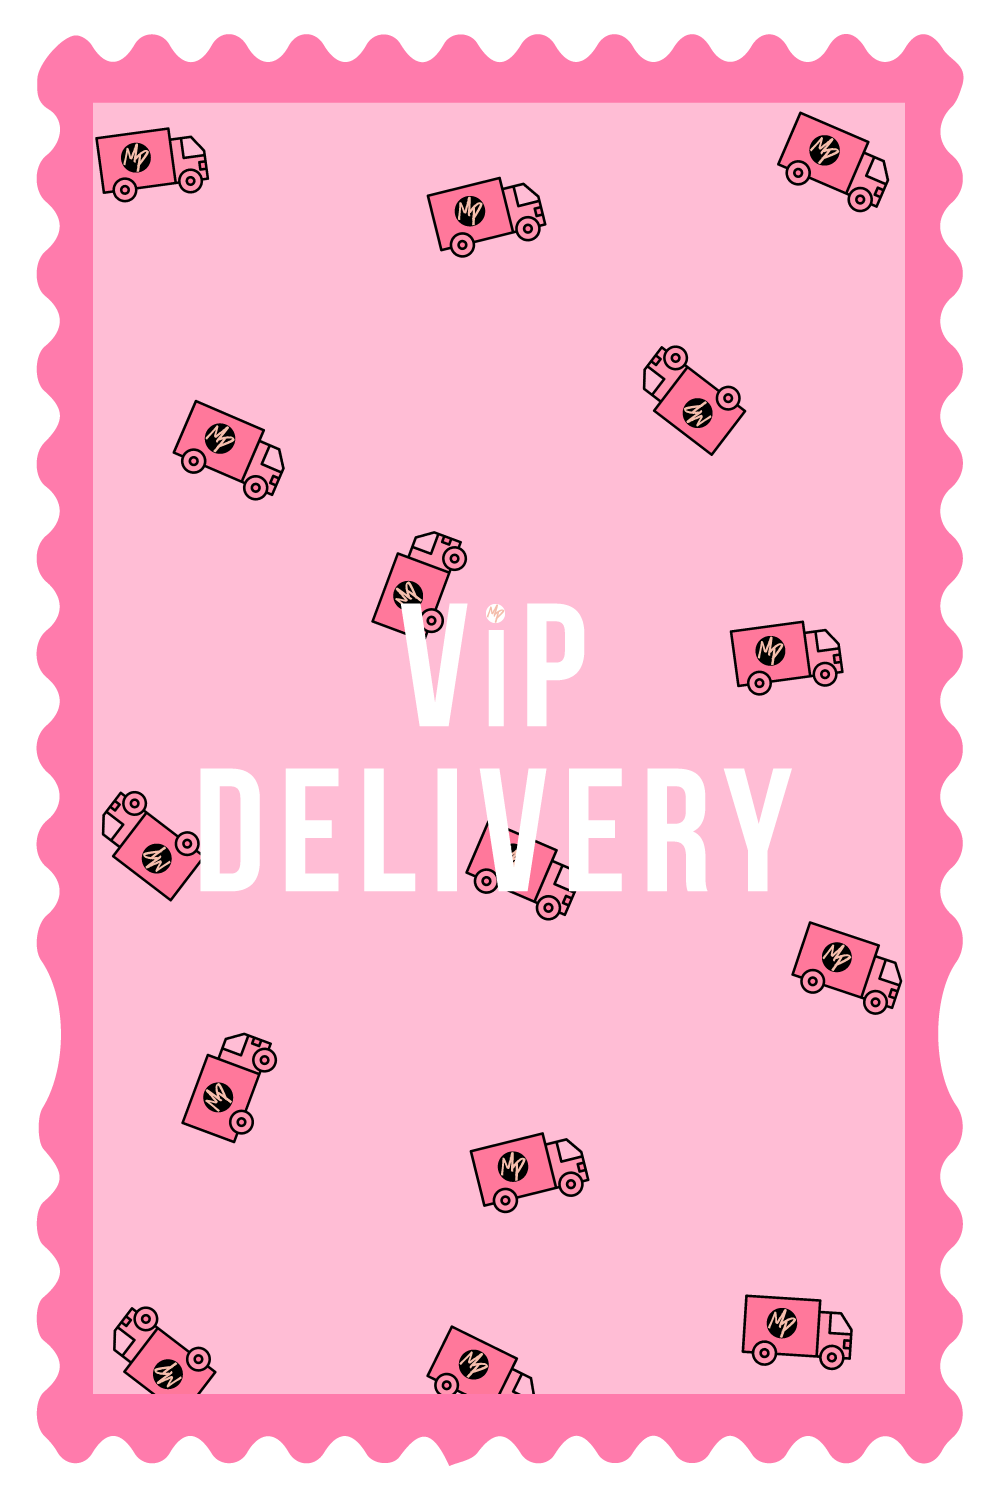 VIP delivery